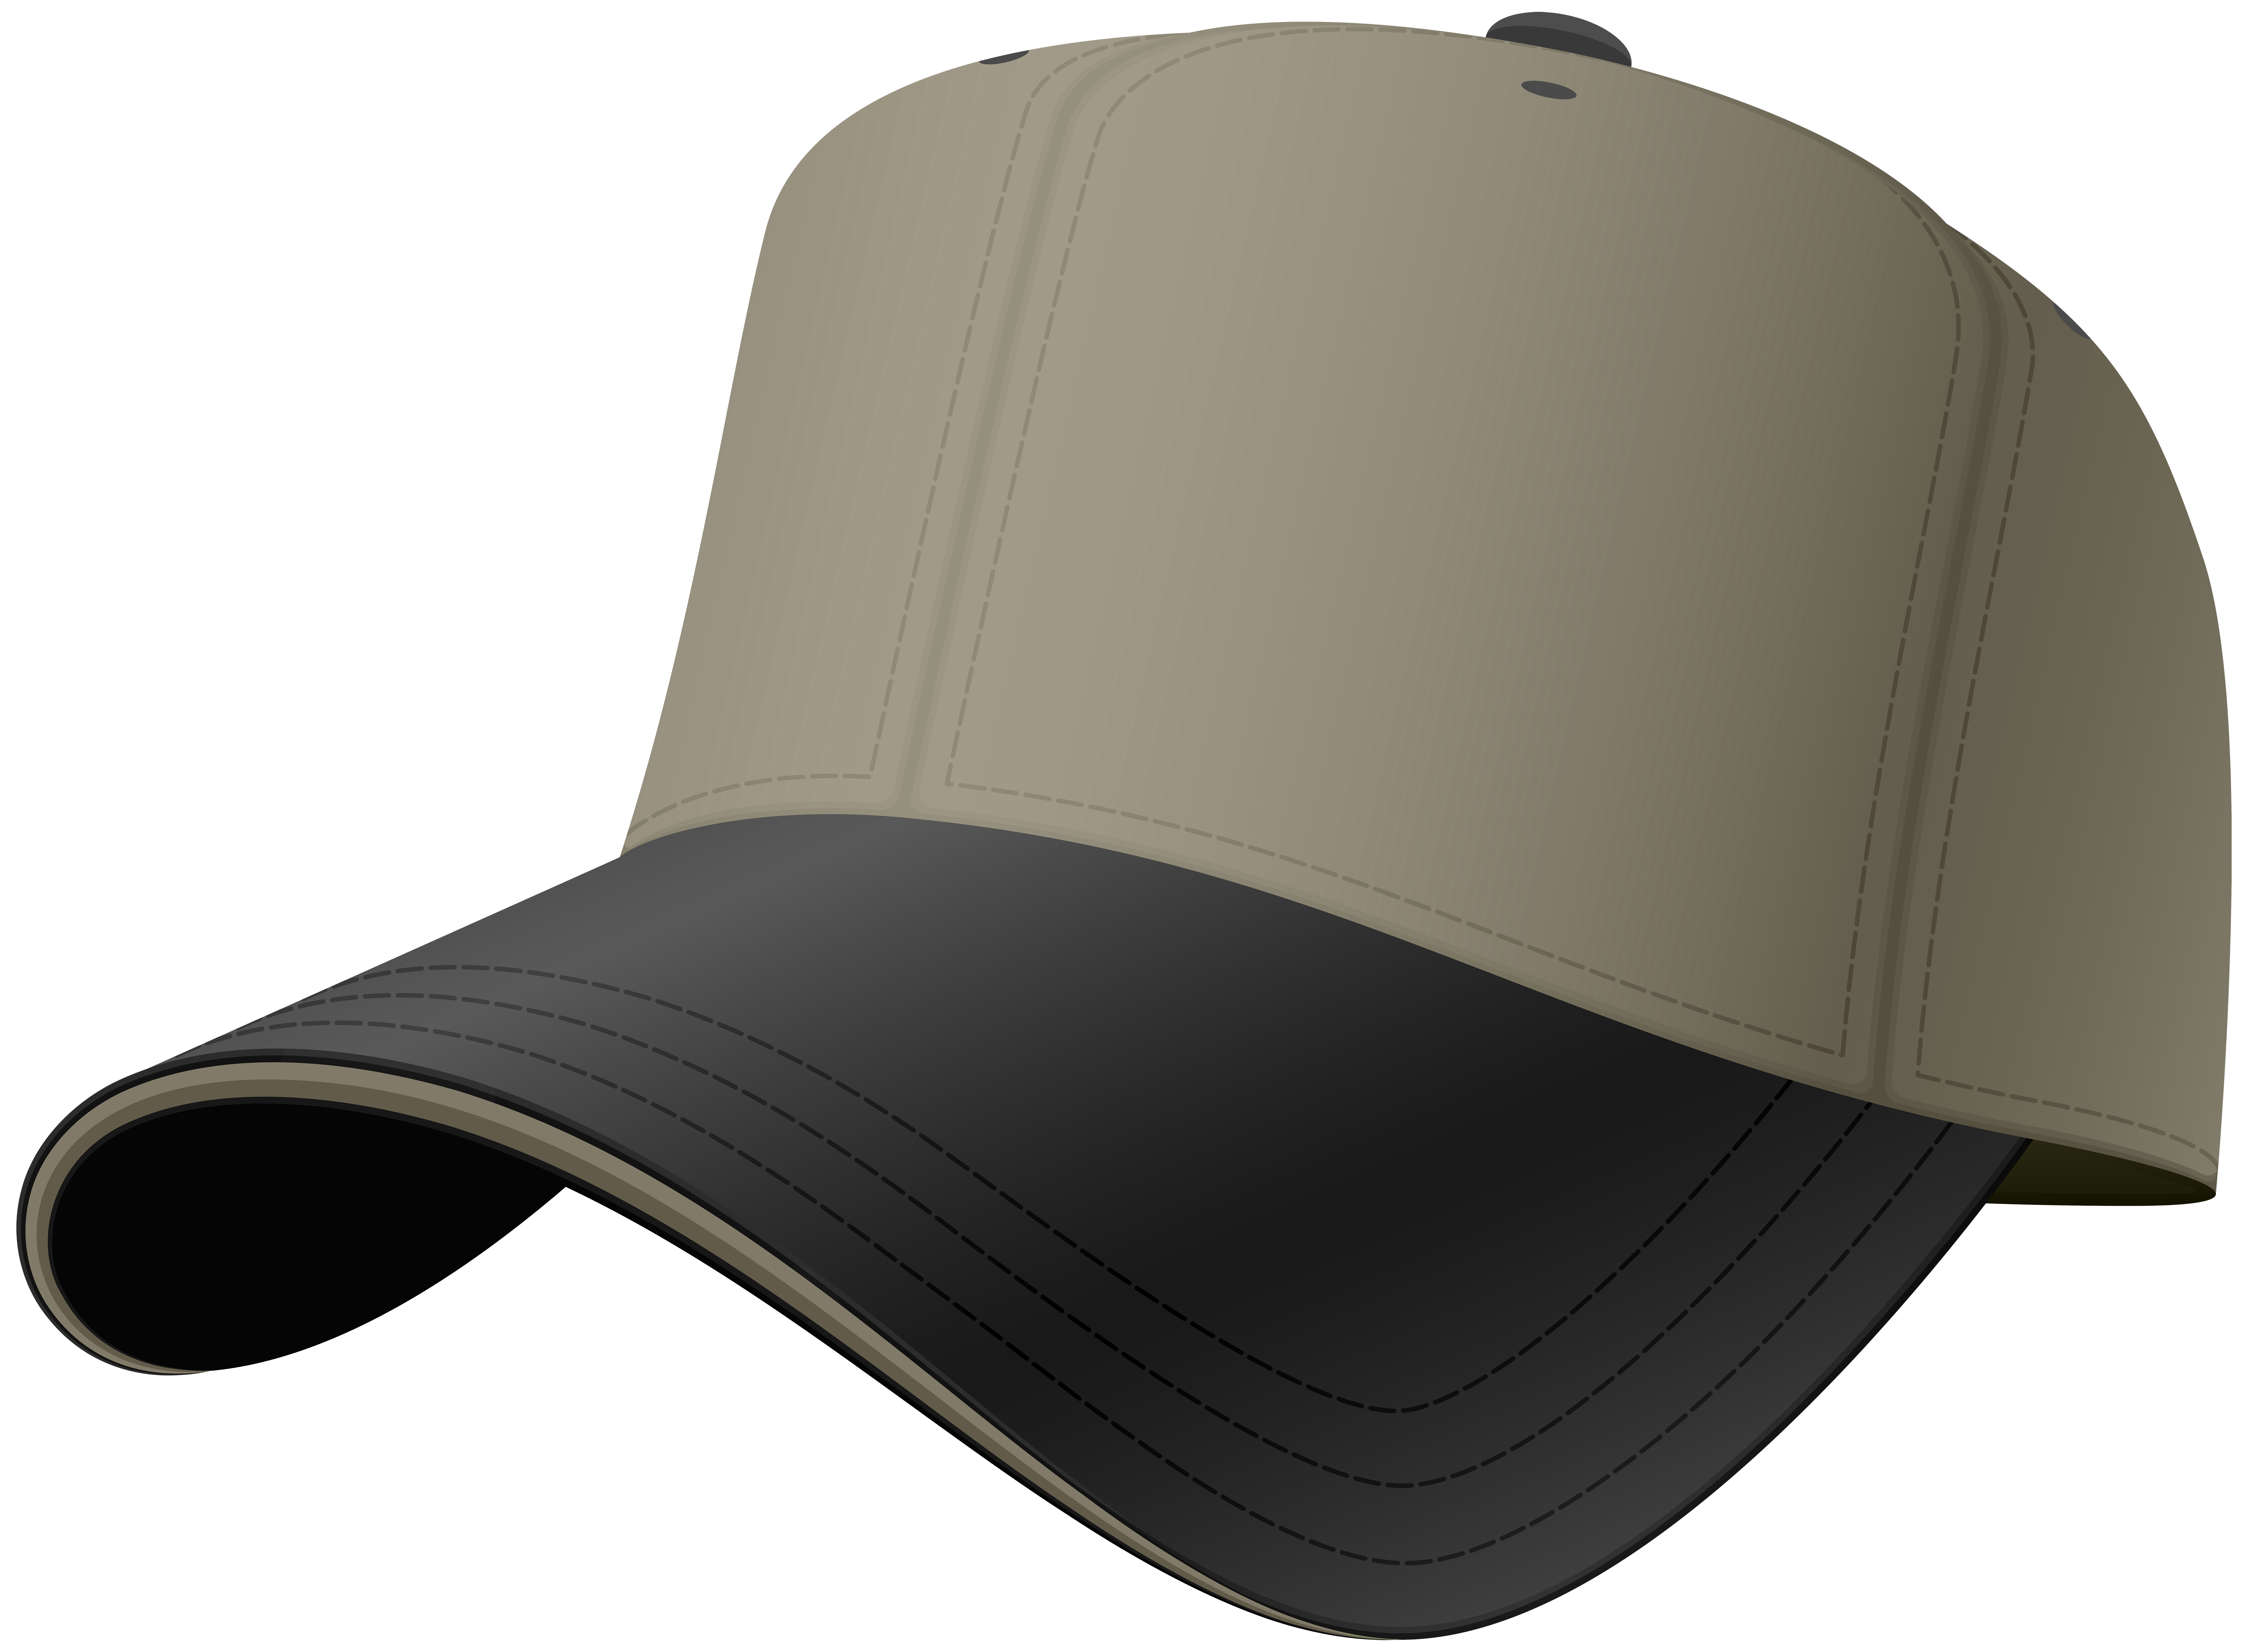 Baseball cap clipart transparent background png library stock Baseball Cap Free PNG Clip Art Image | Gallery Yopriceville - High ... png library stock